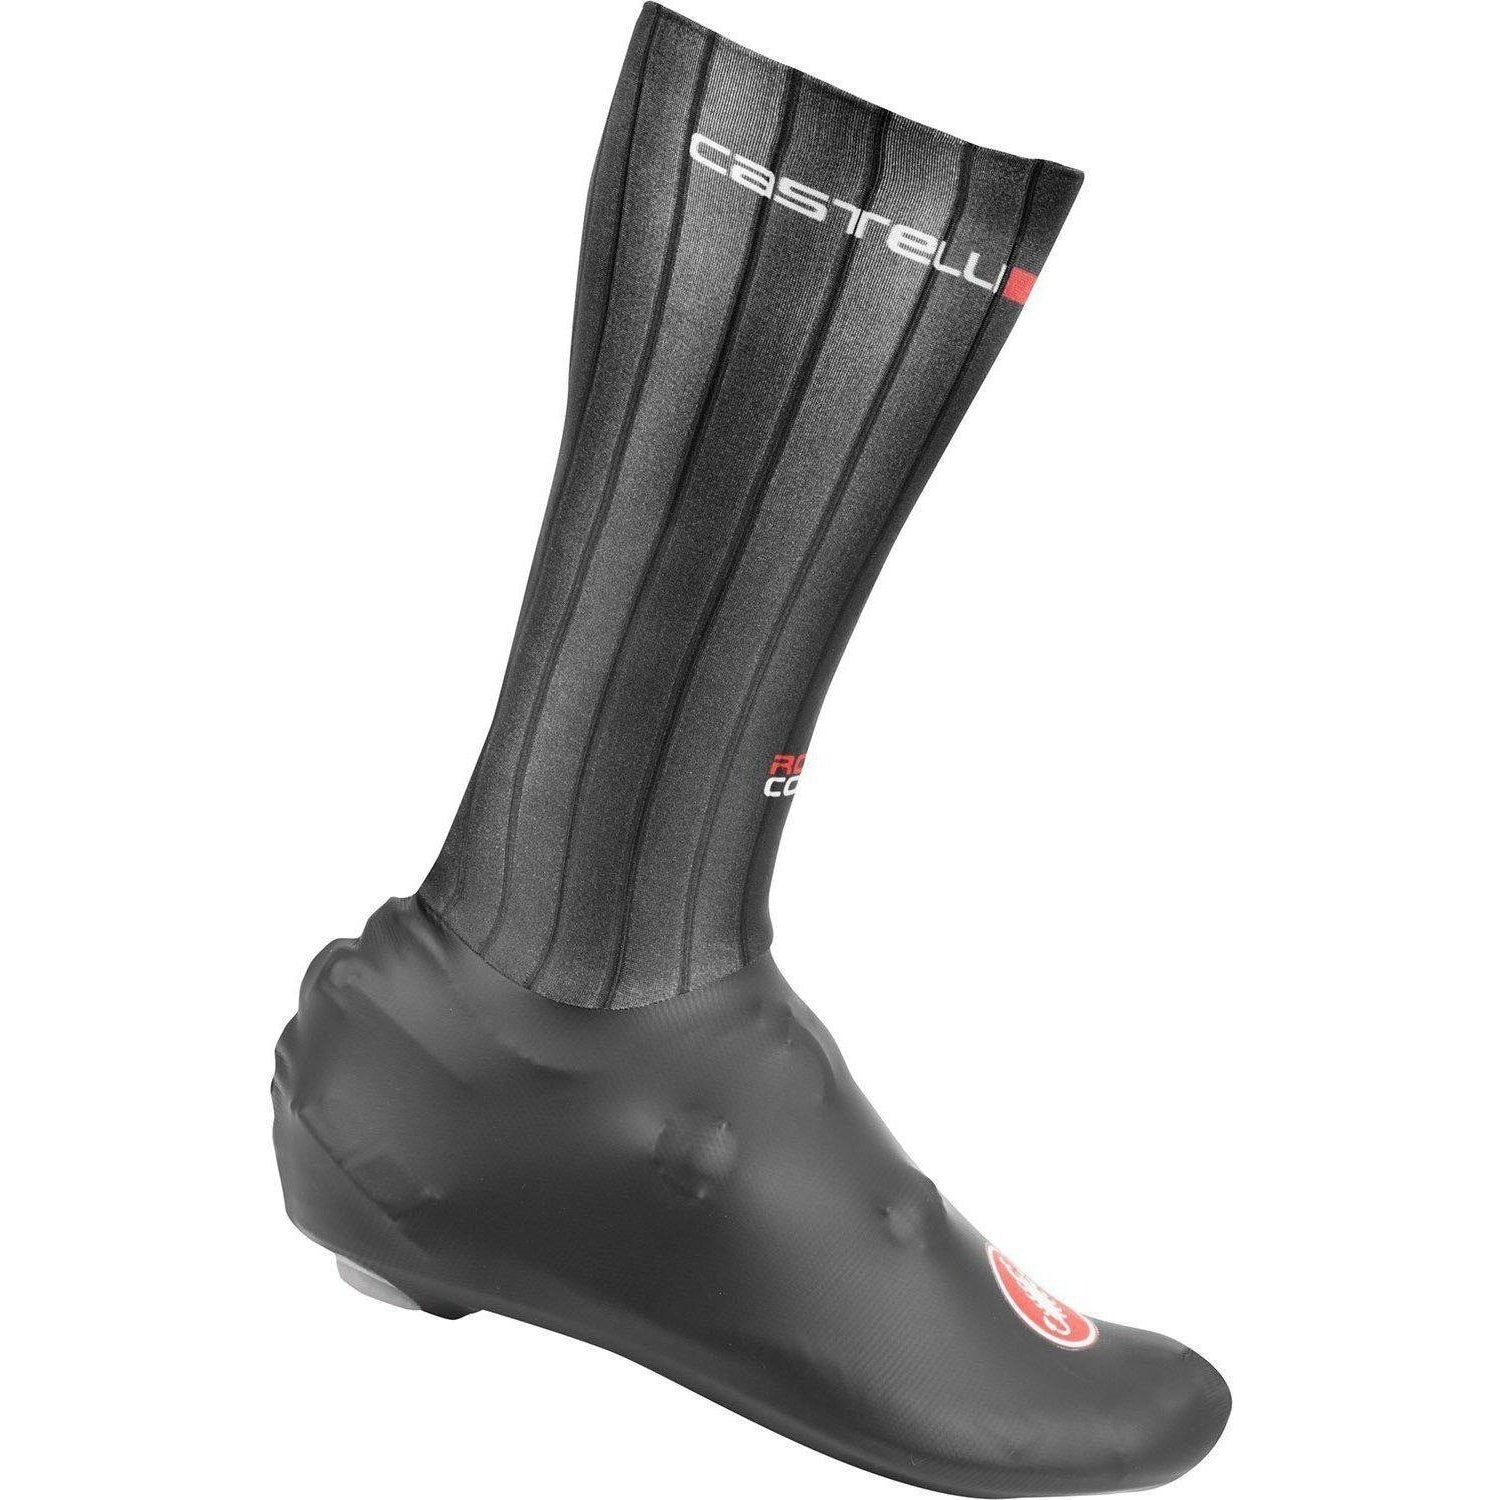 Castelli Fast Feet TT Shoe Covers